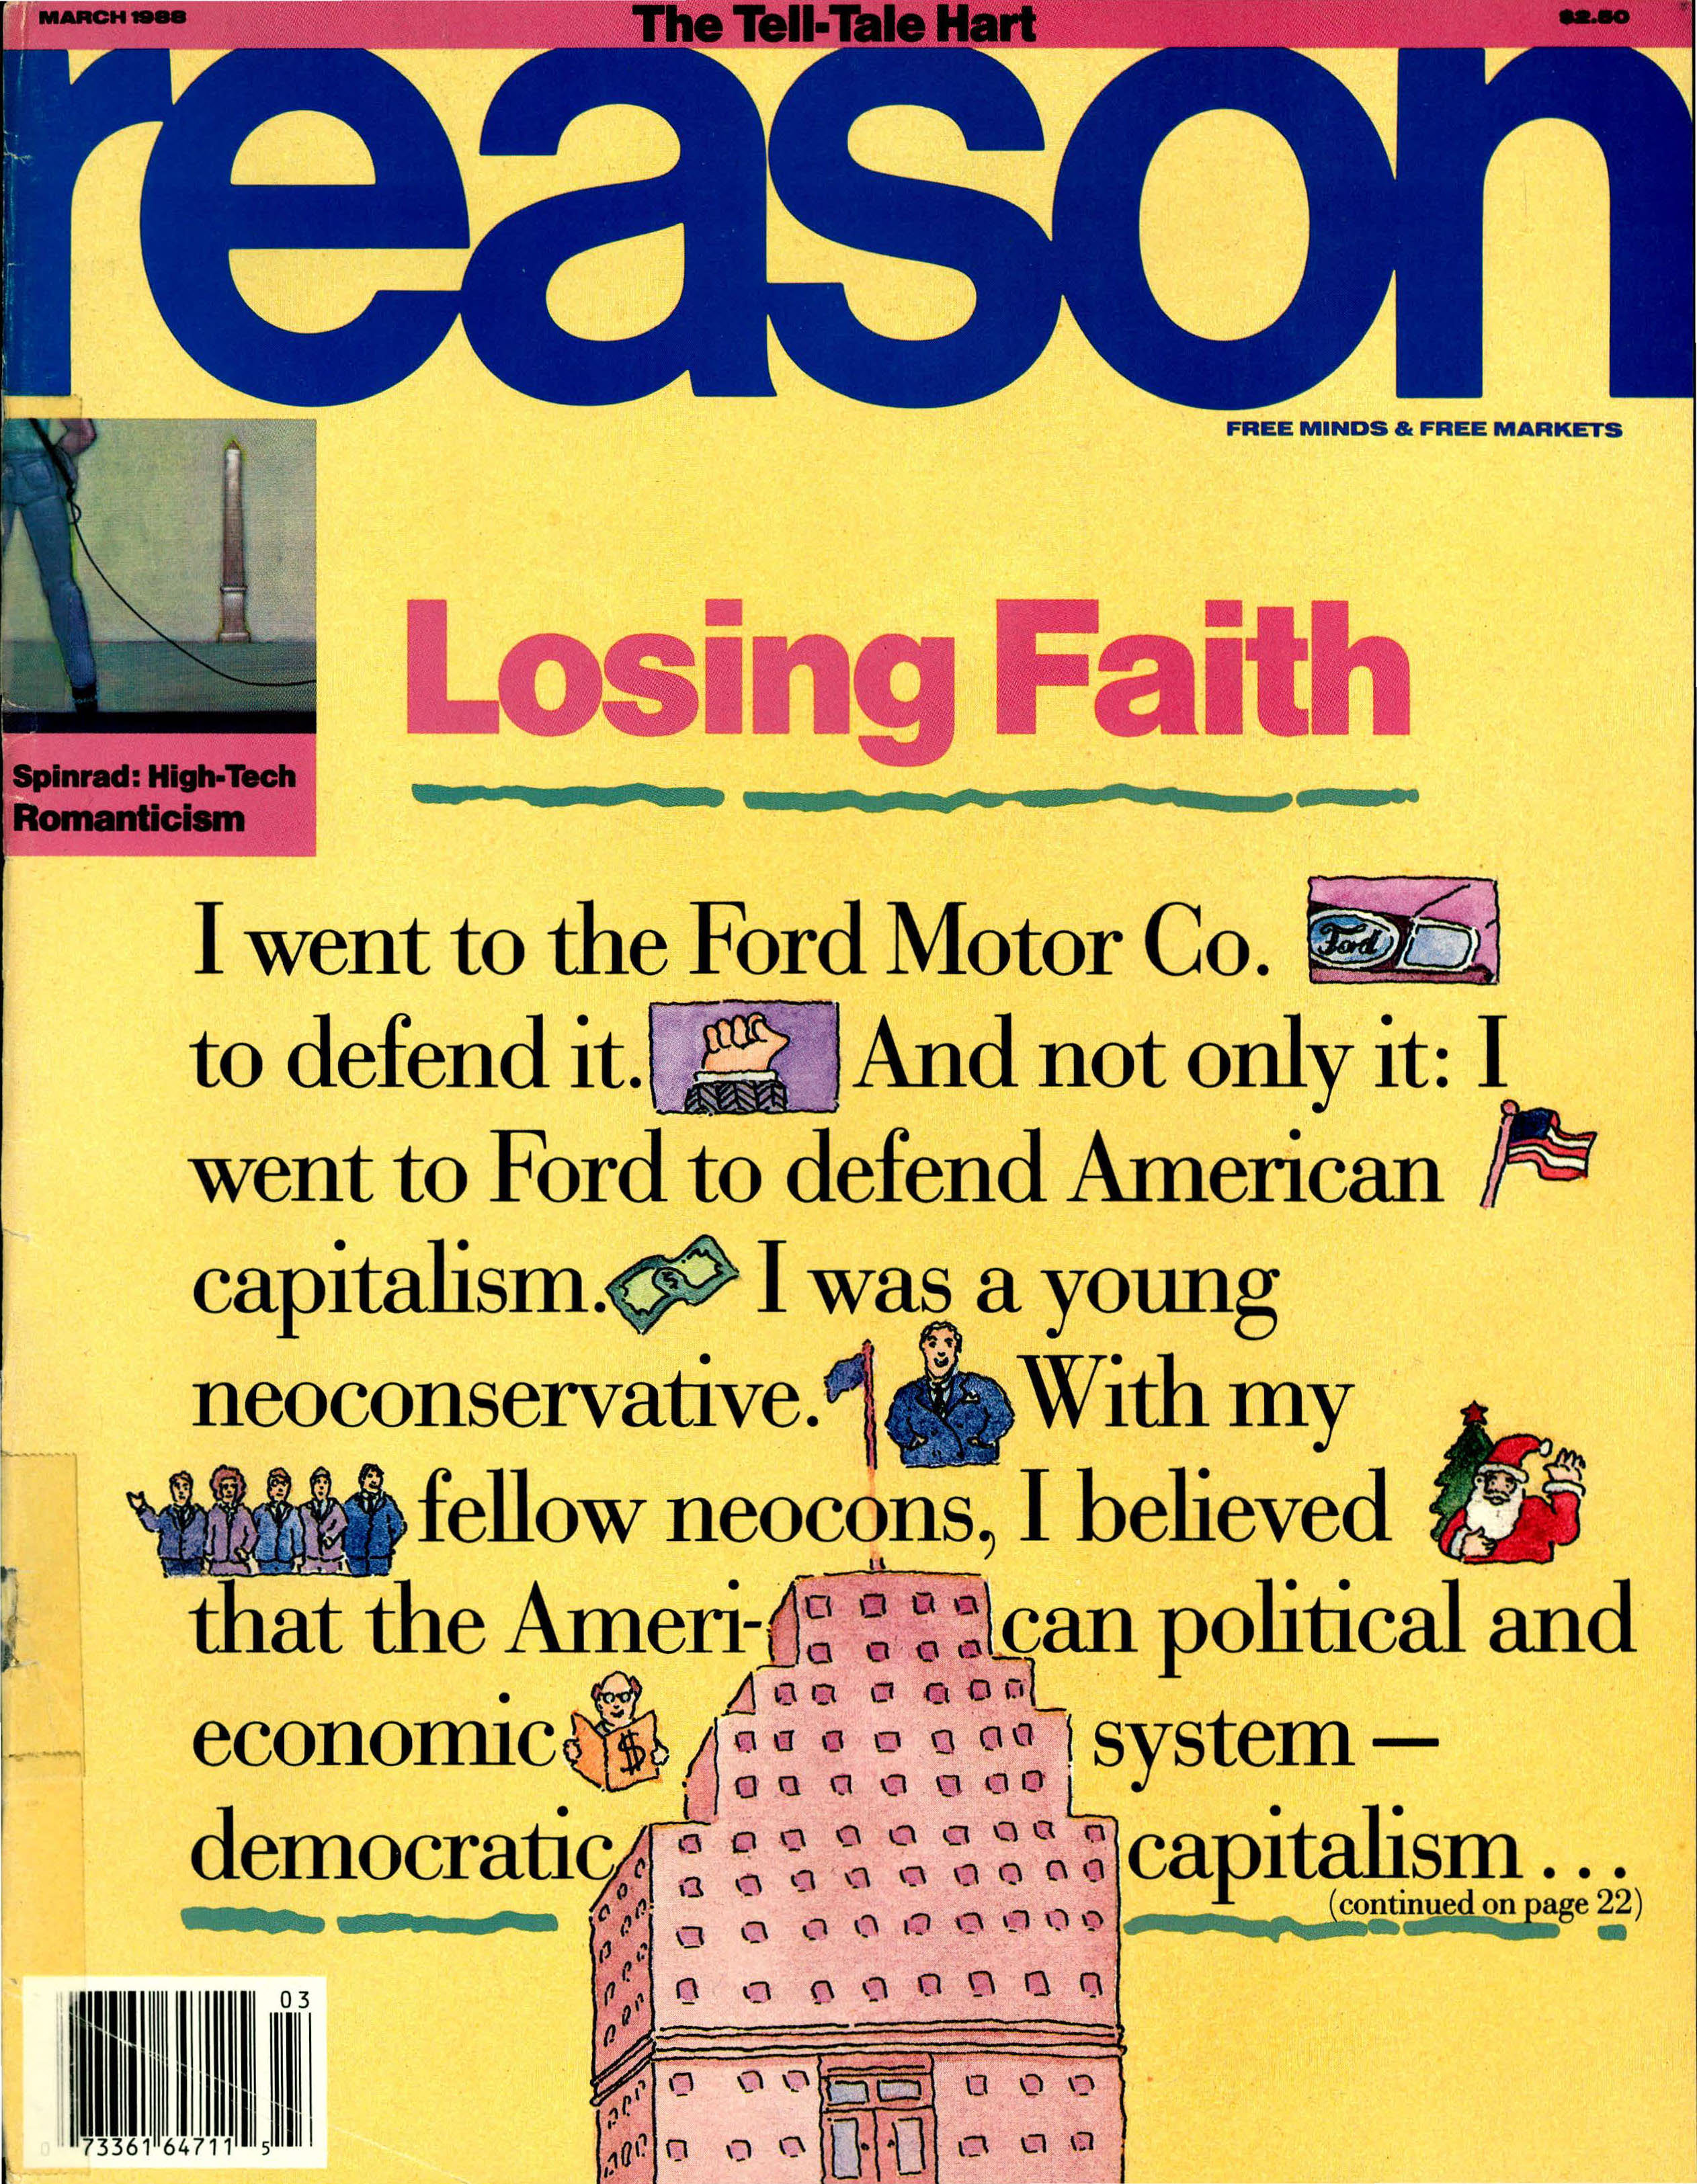 Reason Magazine, March 1988 cover image